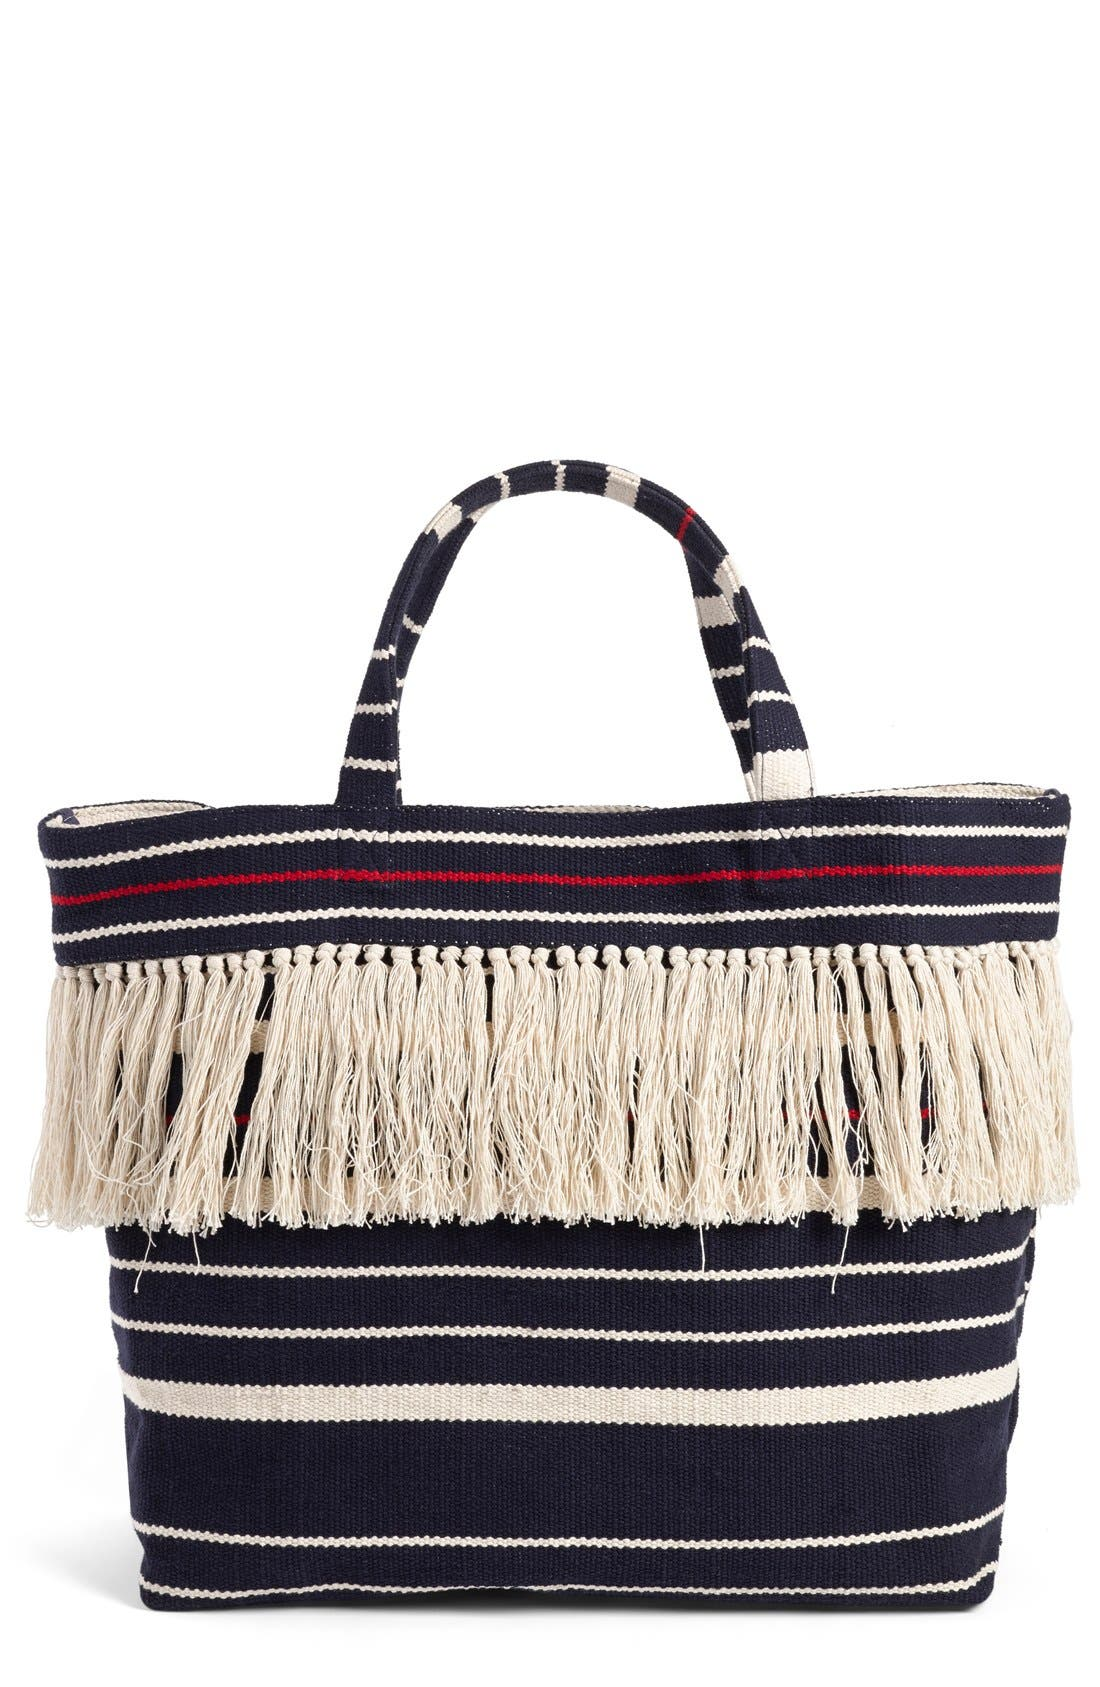 Alternate Image 1 Selected - Madewell Woven Fringe Beach Tote